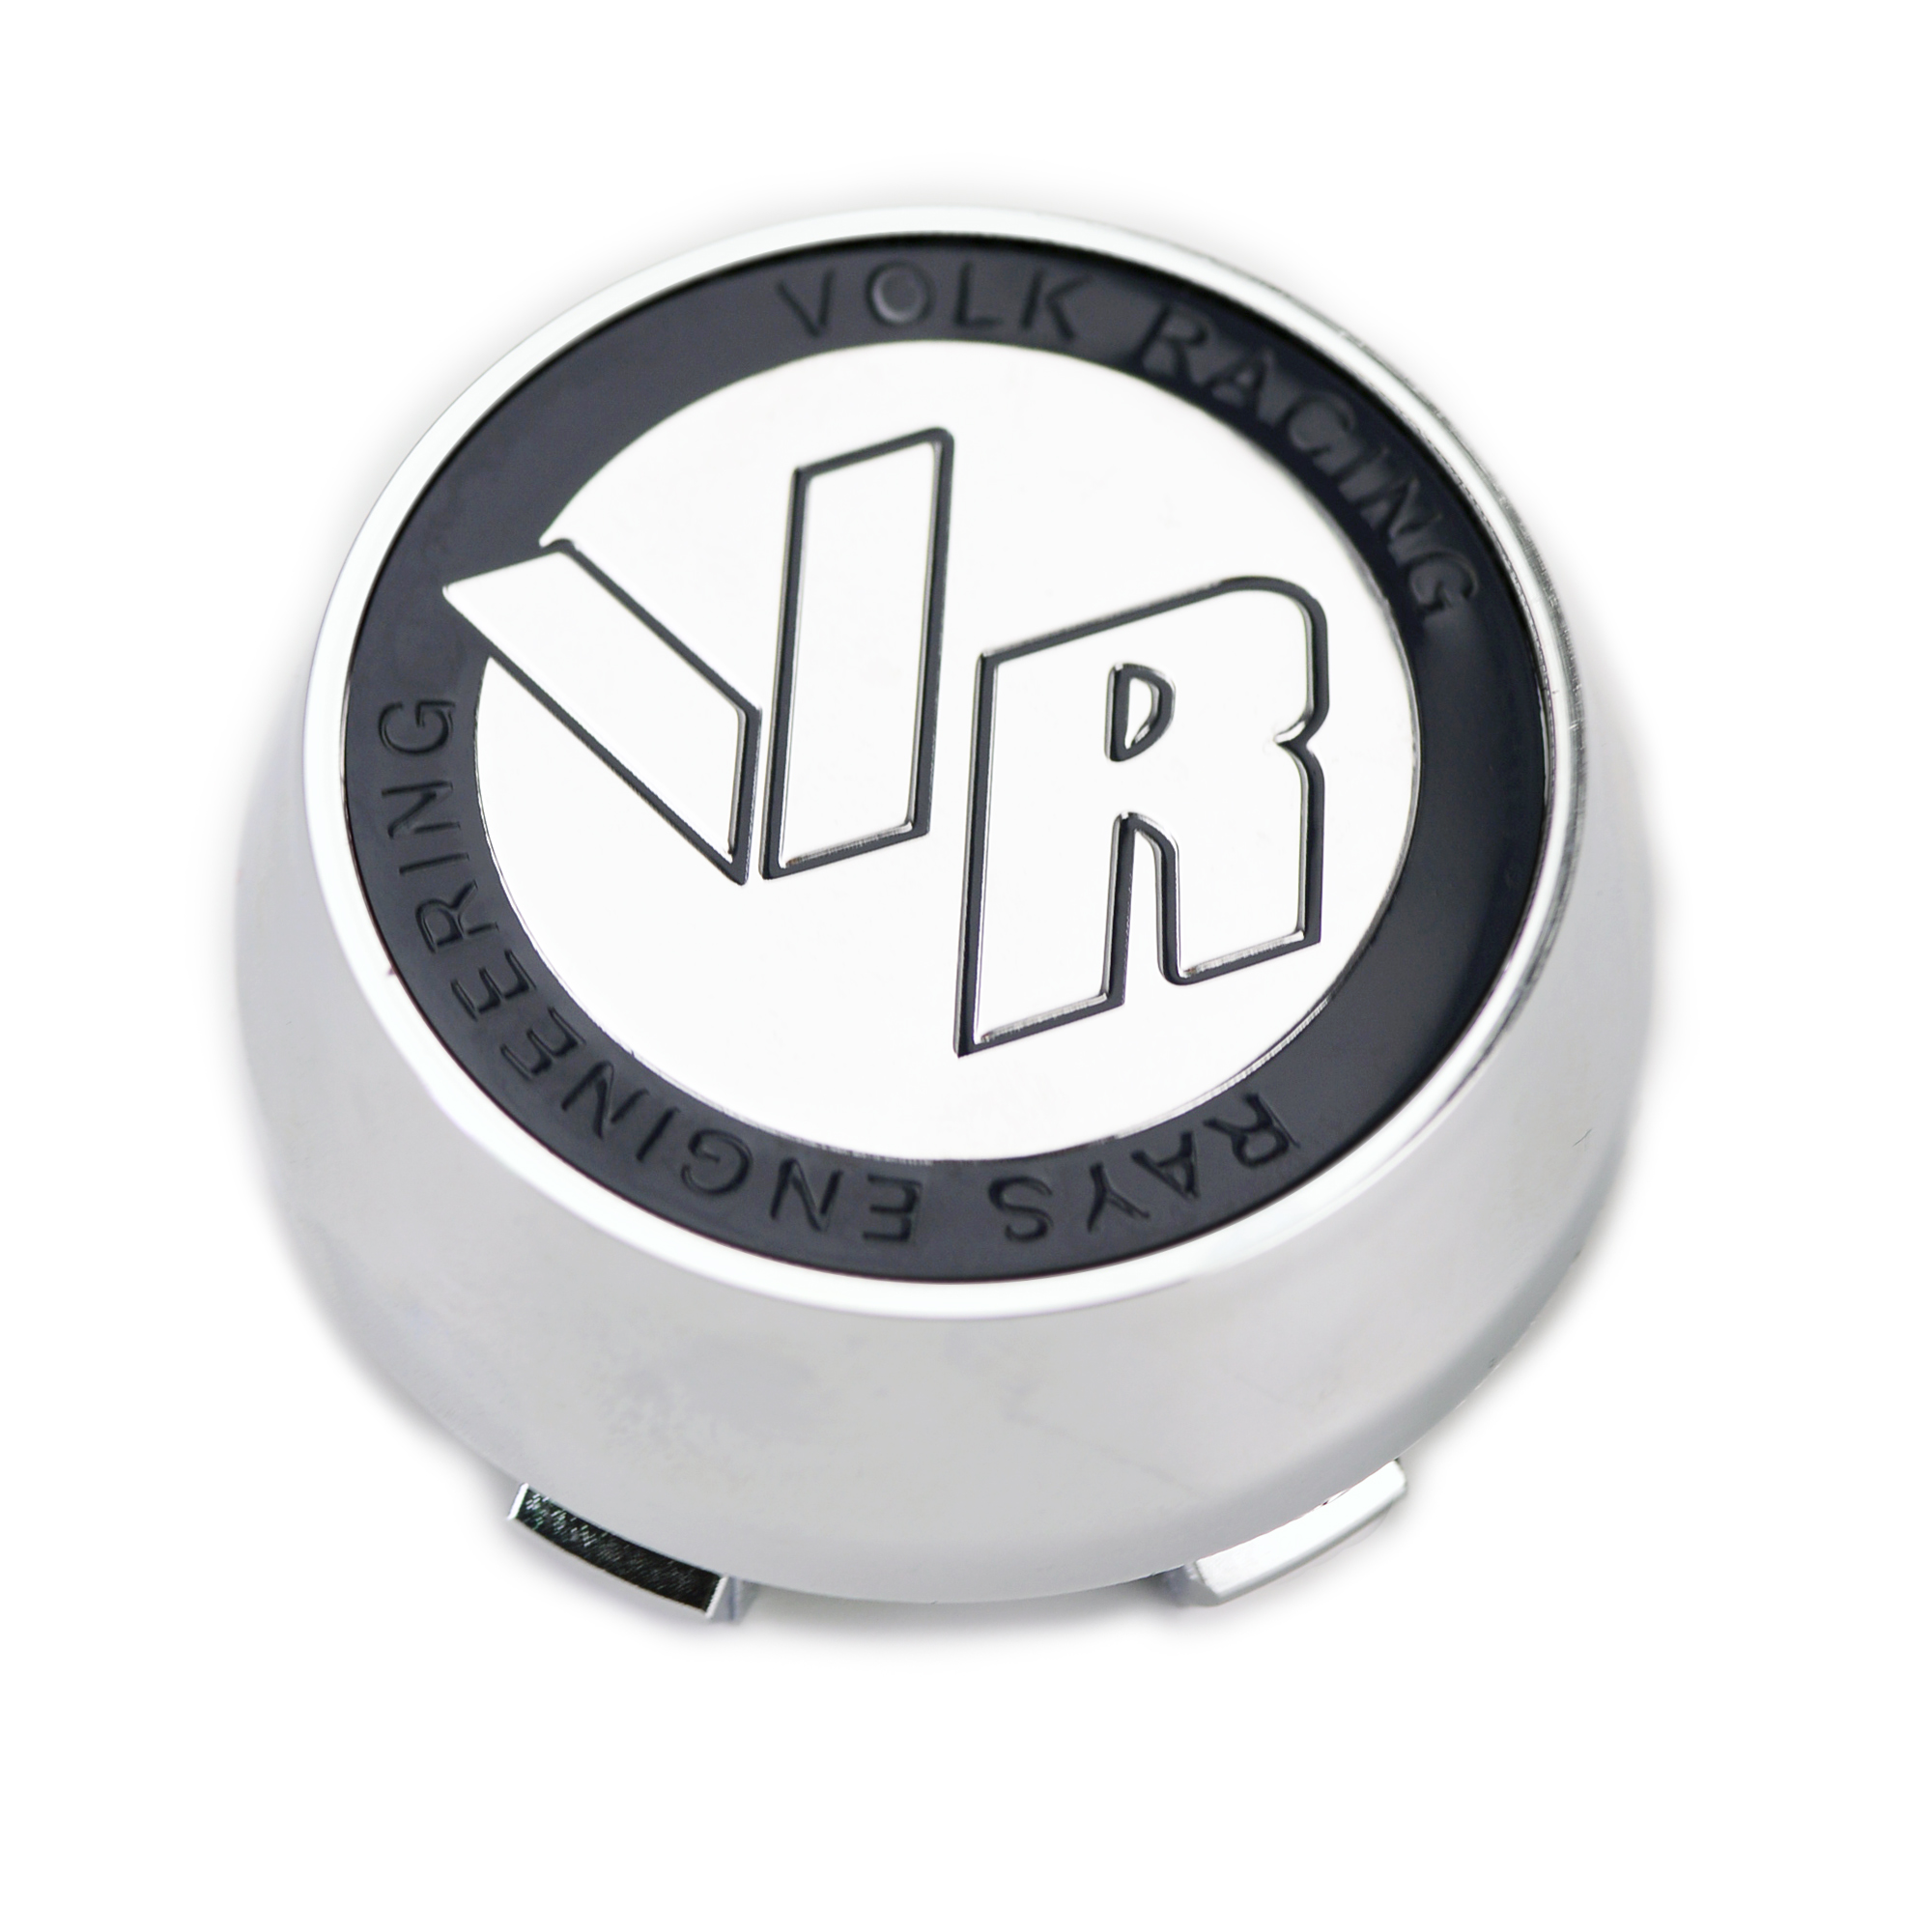 NEW 4x Cup 60 mm Wheel Center Caps Cover Hub Grey Gray For Volk Rays Racing